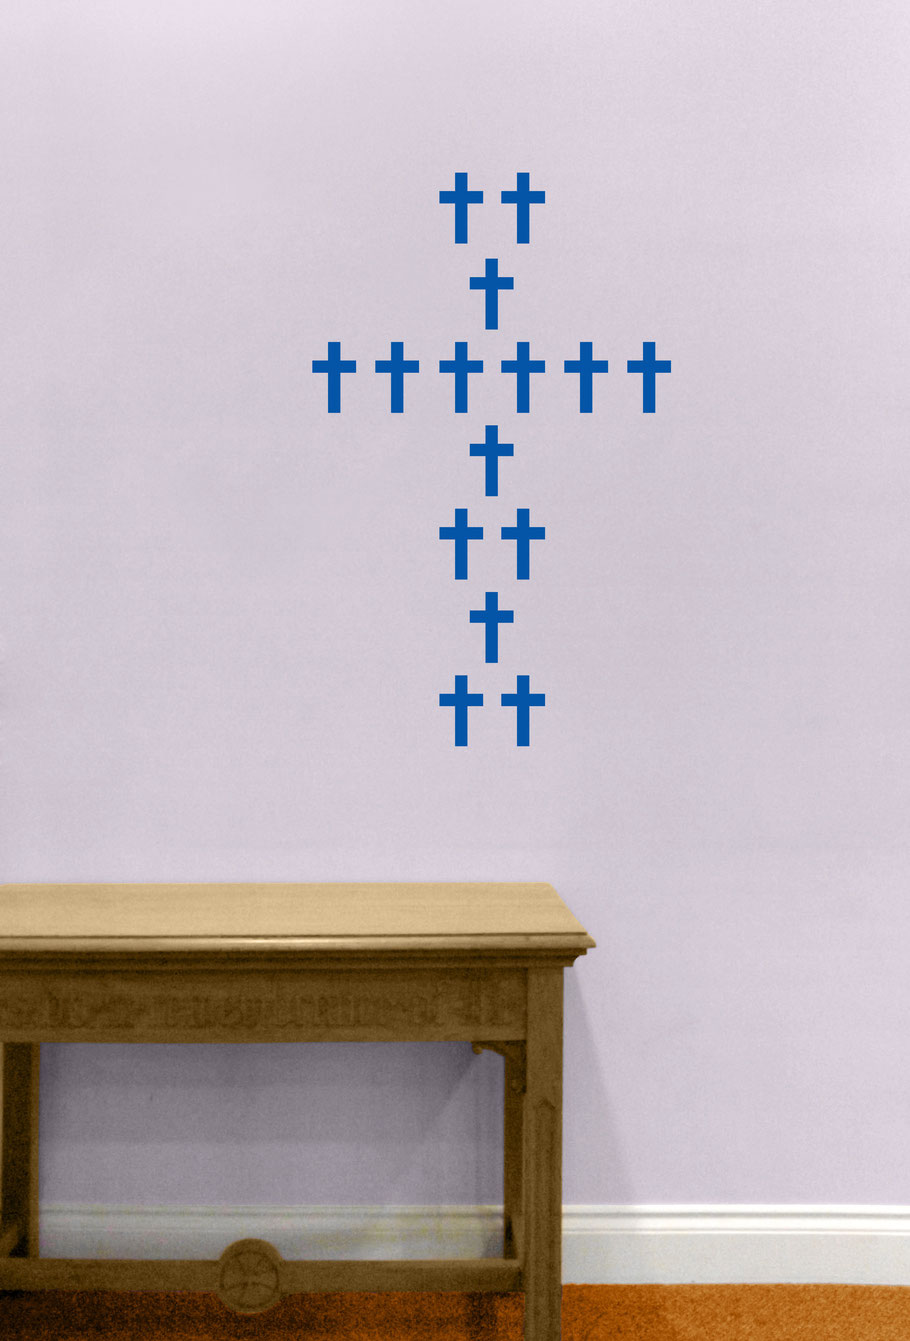 Mixed pack sizes of vinyl Chunky Crosses to make your own interesting designs. They come in many colours and stick on flat smooth surfaces. Great for being spontaneously creative.